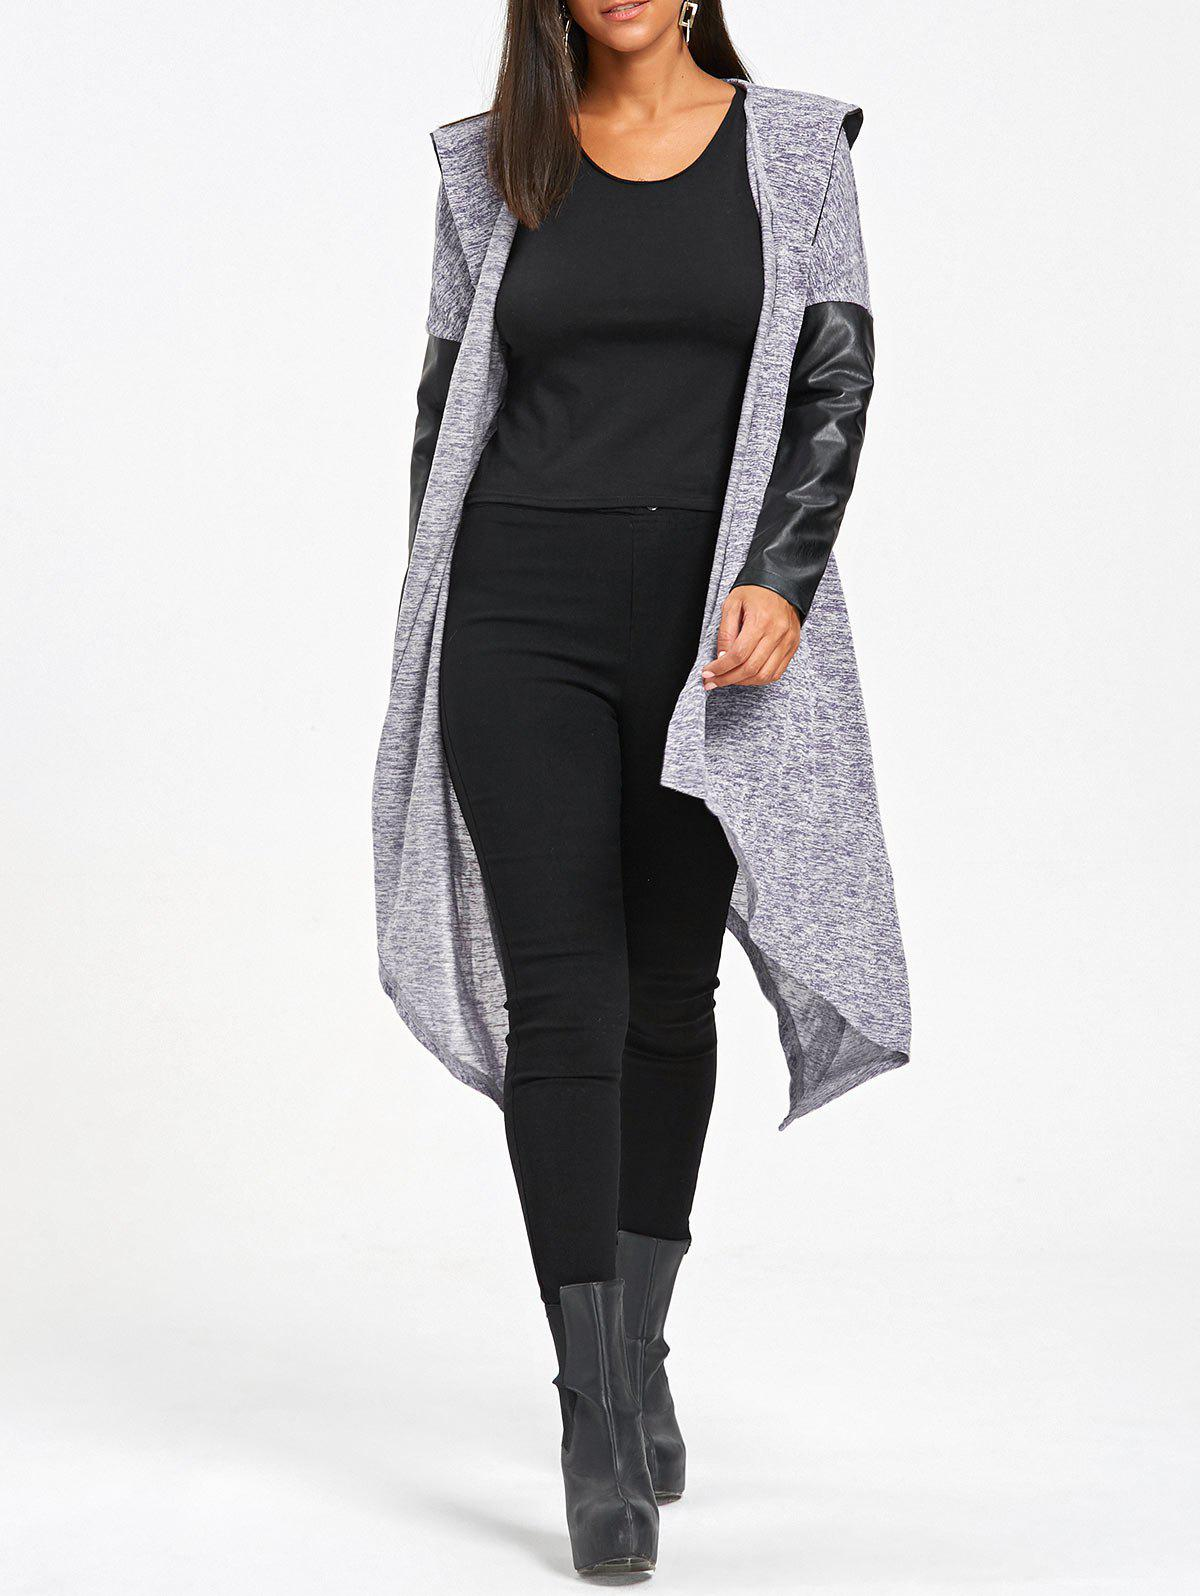 Hooded Open Front PU Insert Asymmetrical Cardigan open front back lace up hooded cardigan